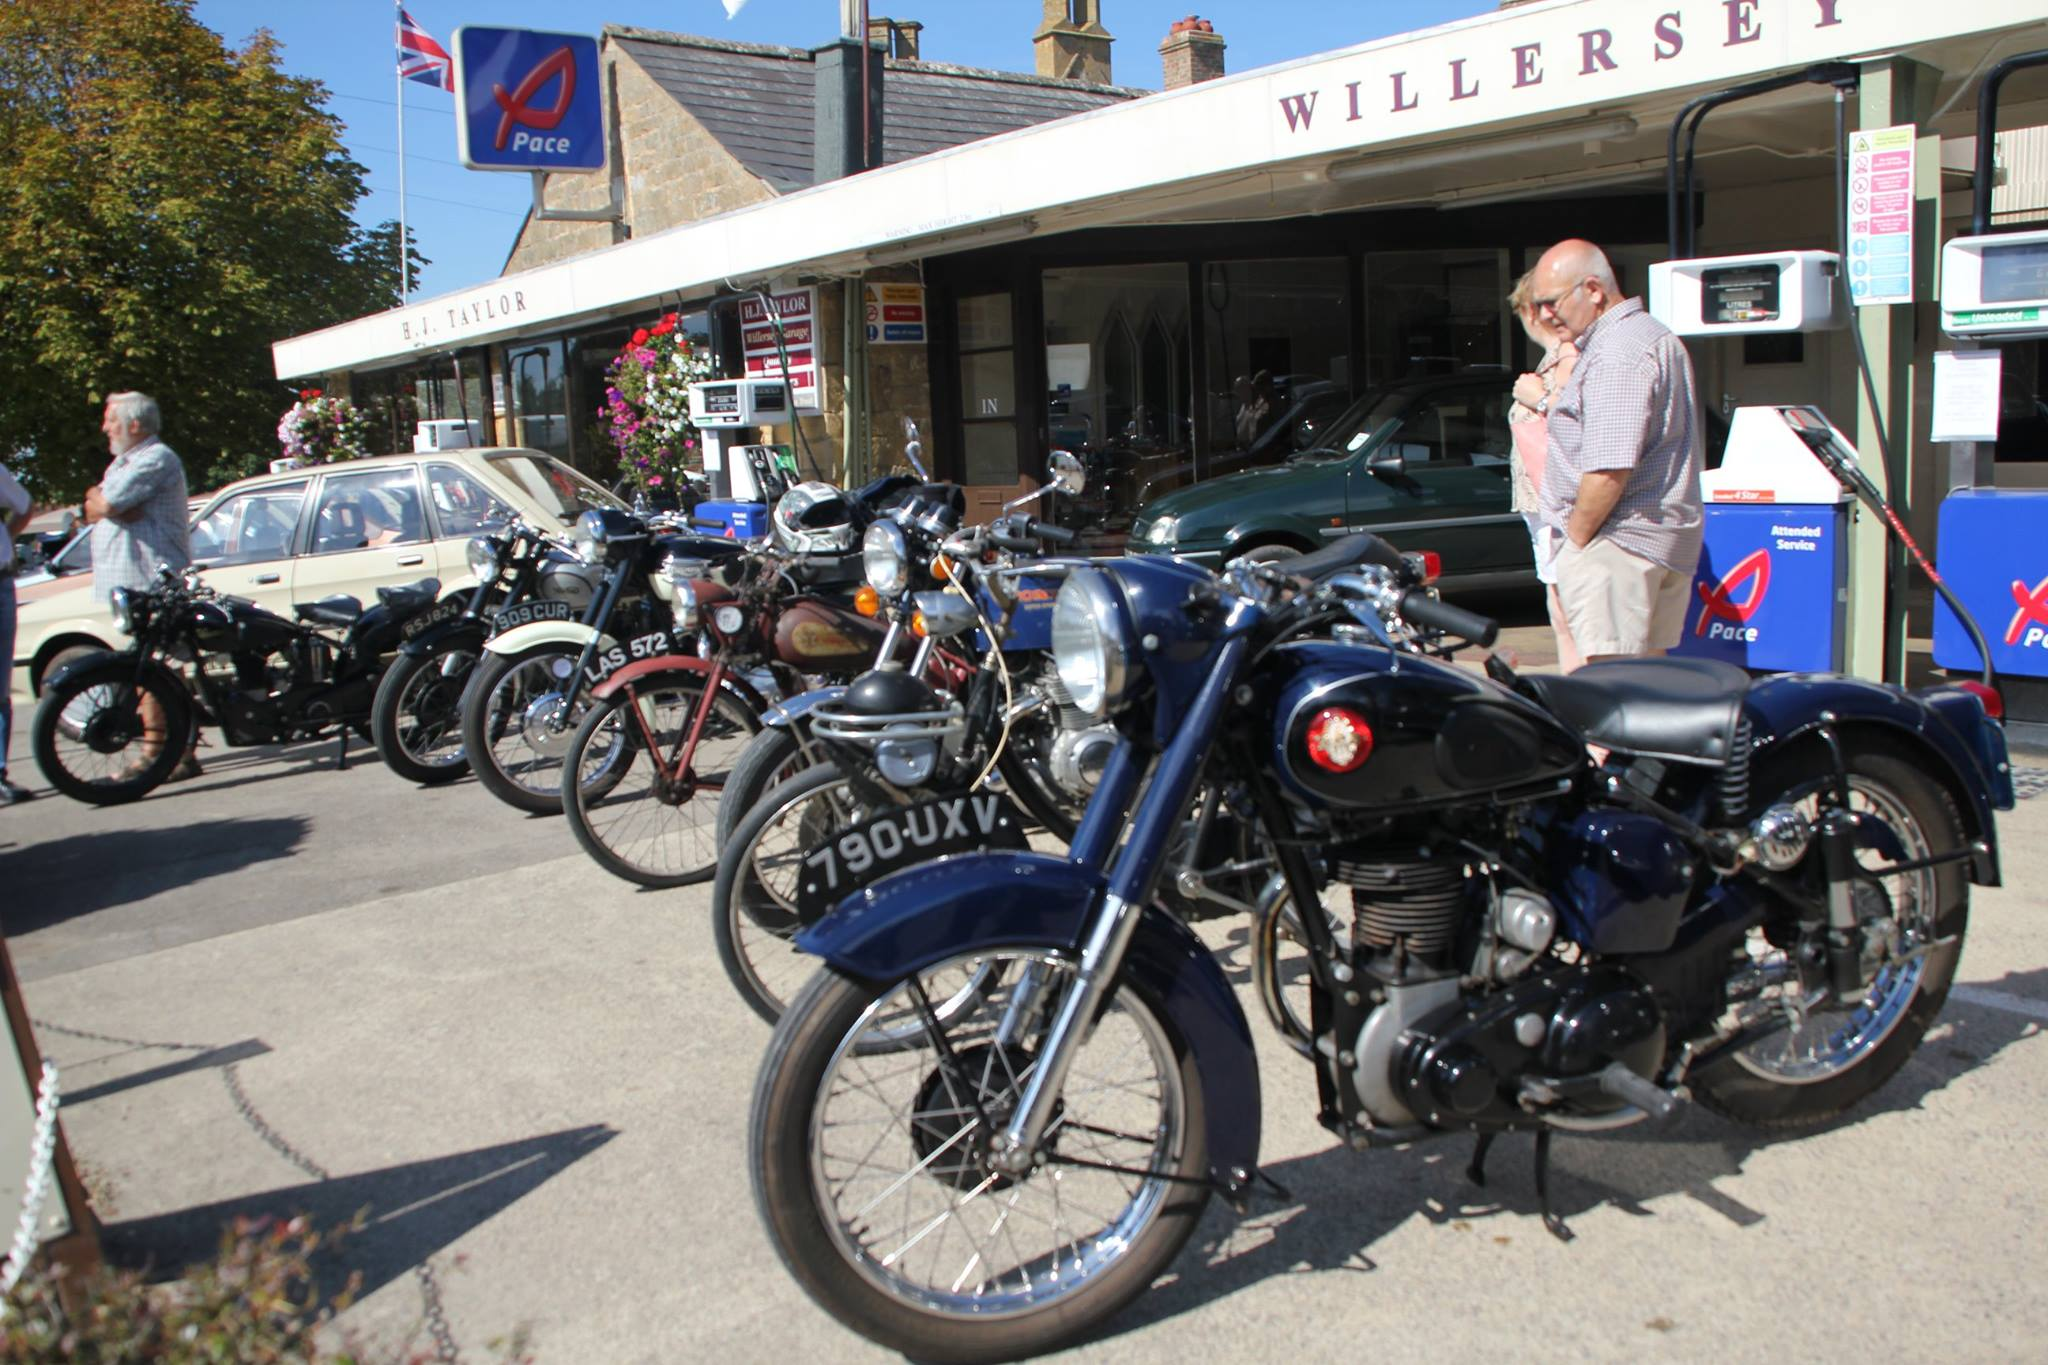 Vintage Motor Cycles at the Willersey Show